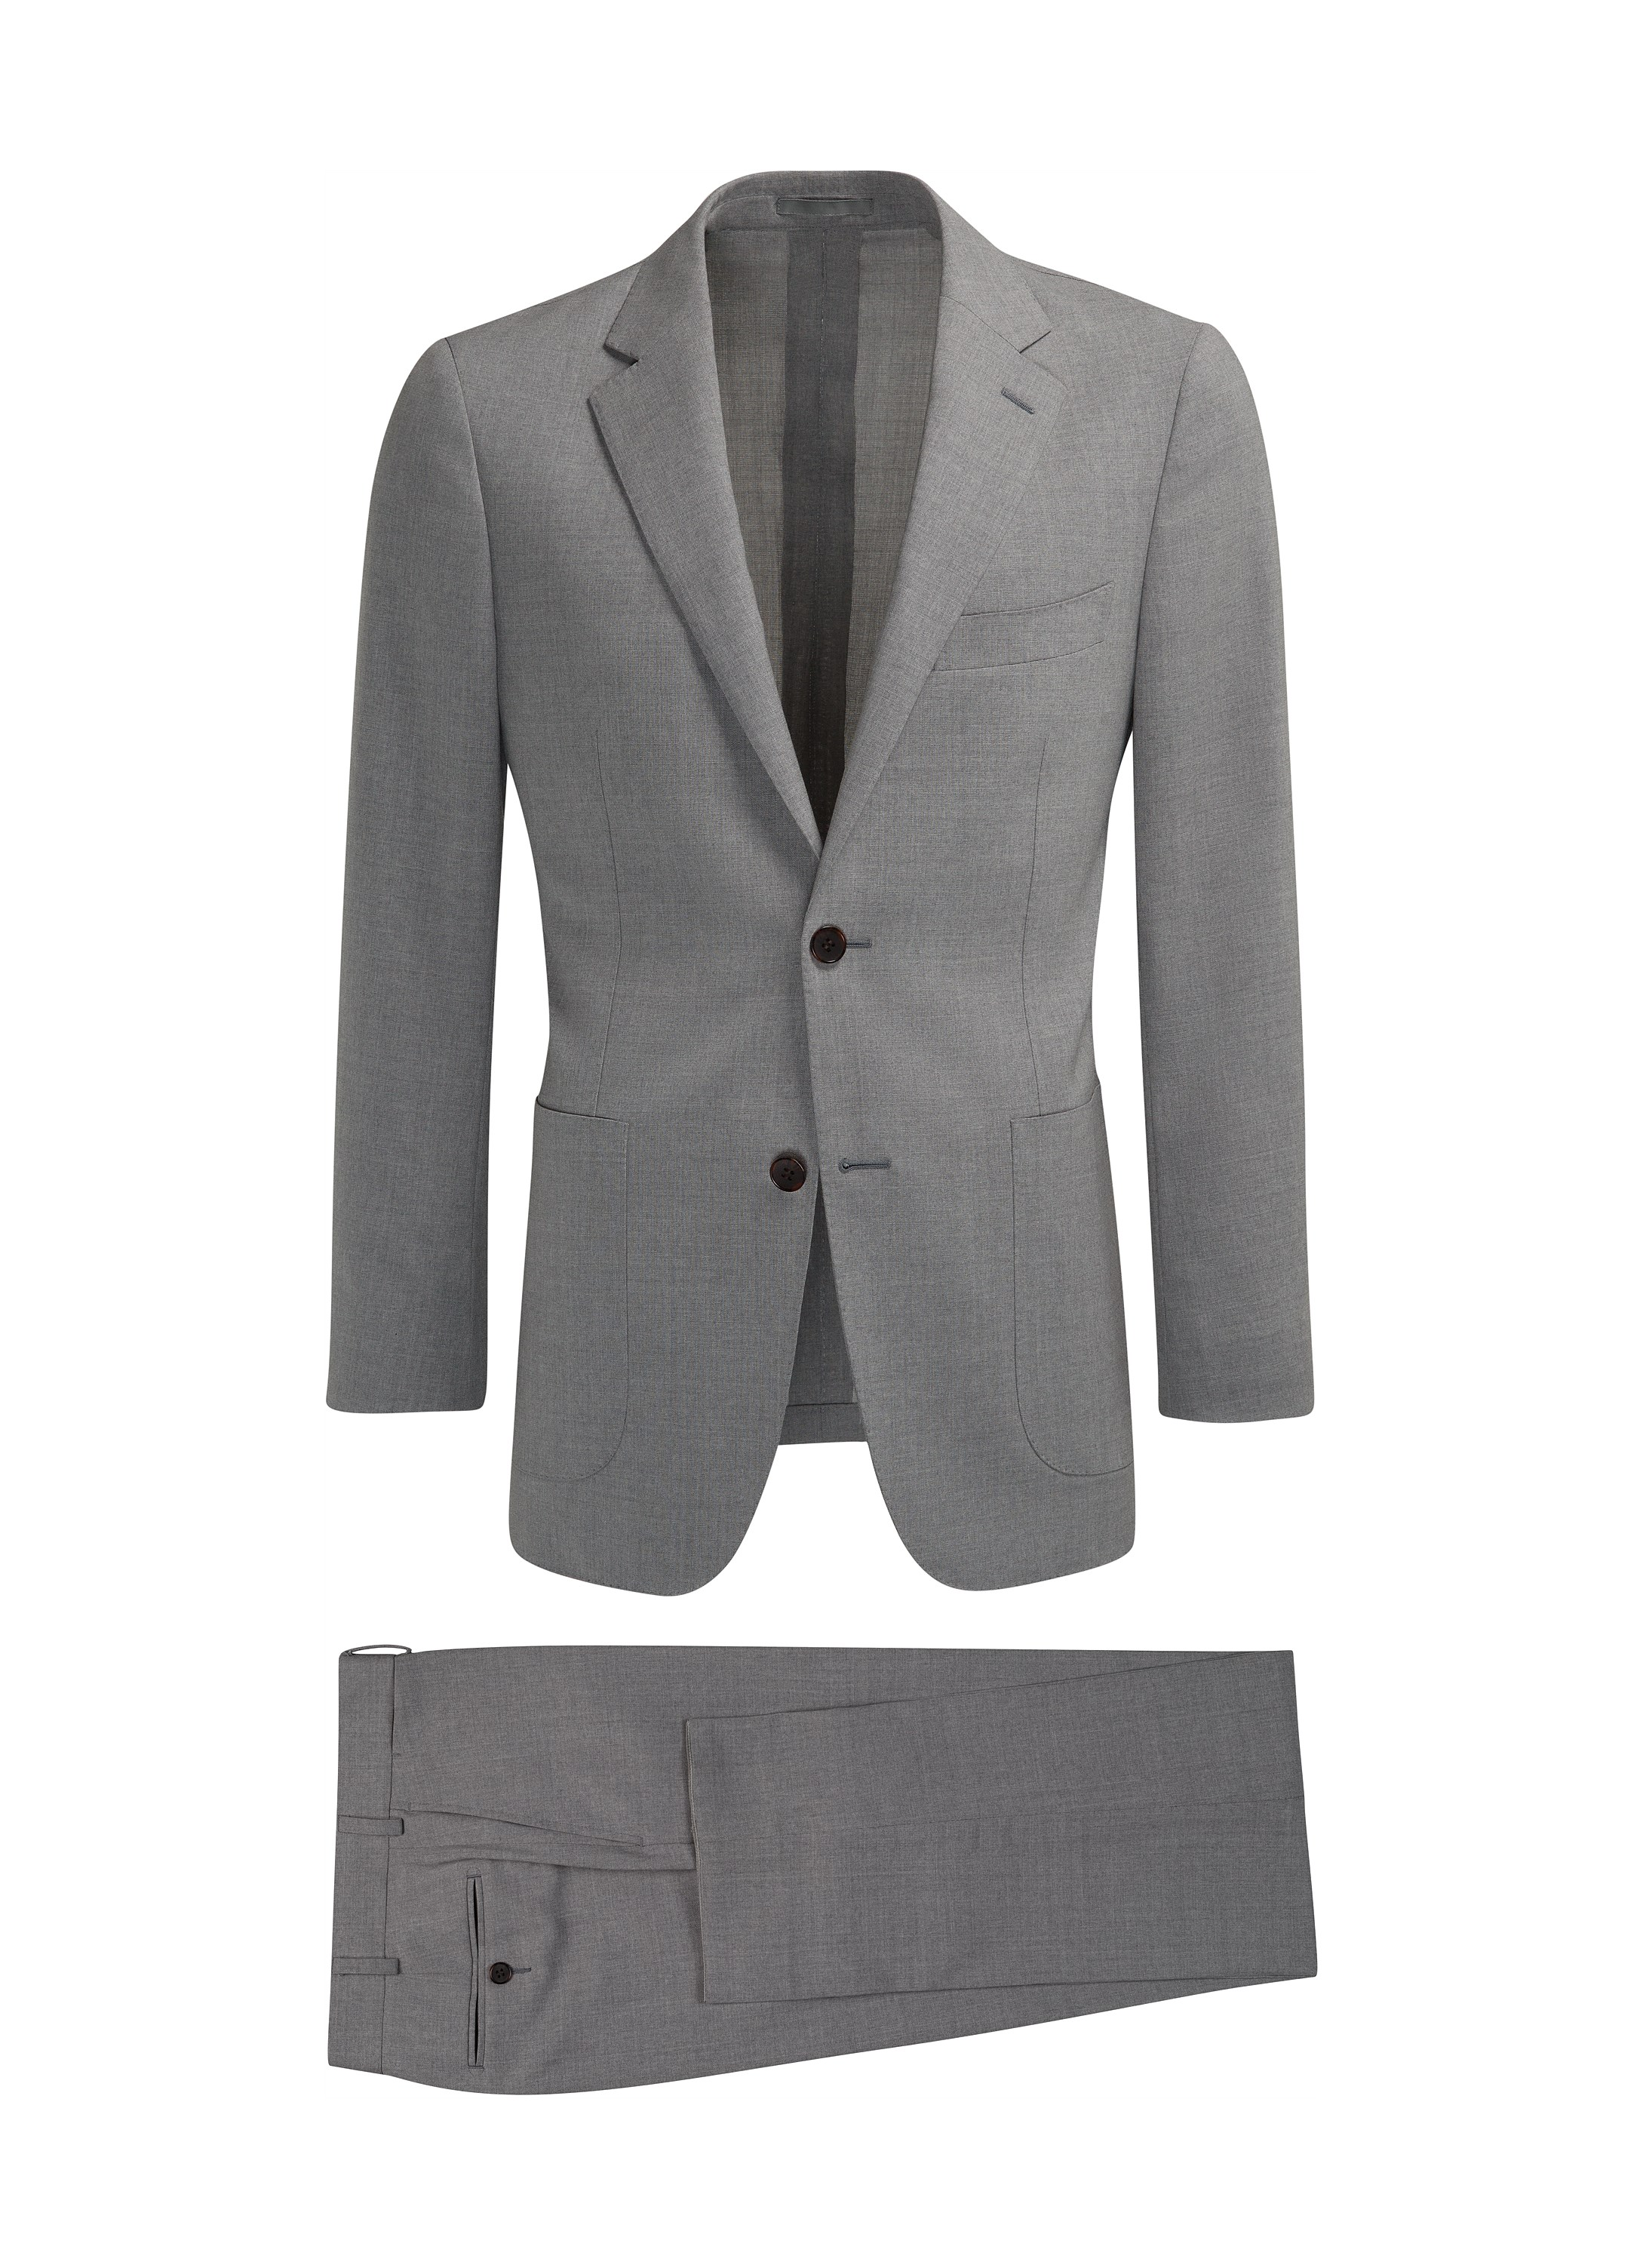 Suits_Light_Grey_Plain_Havana_Traveler_Unlined_P5184_Suitsupply_Online_Store_5.jpg